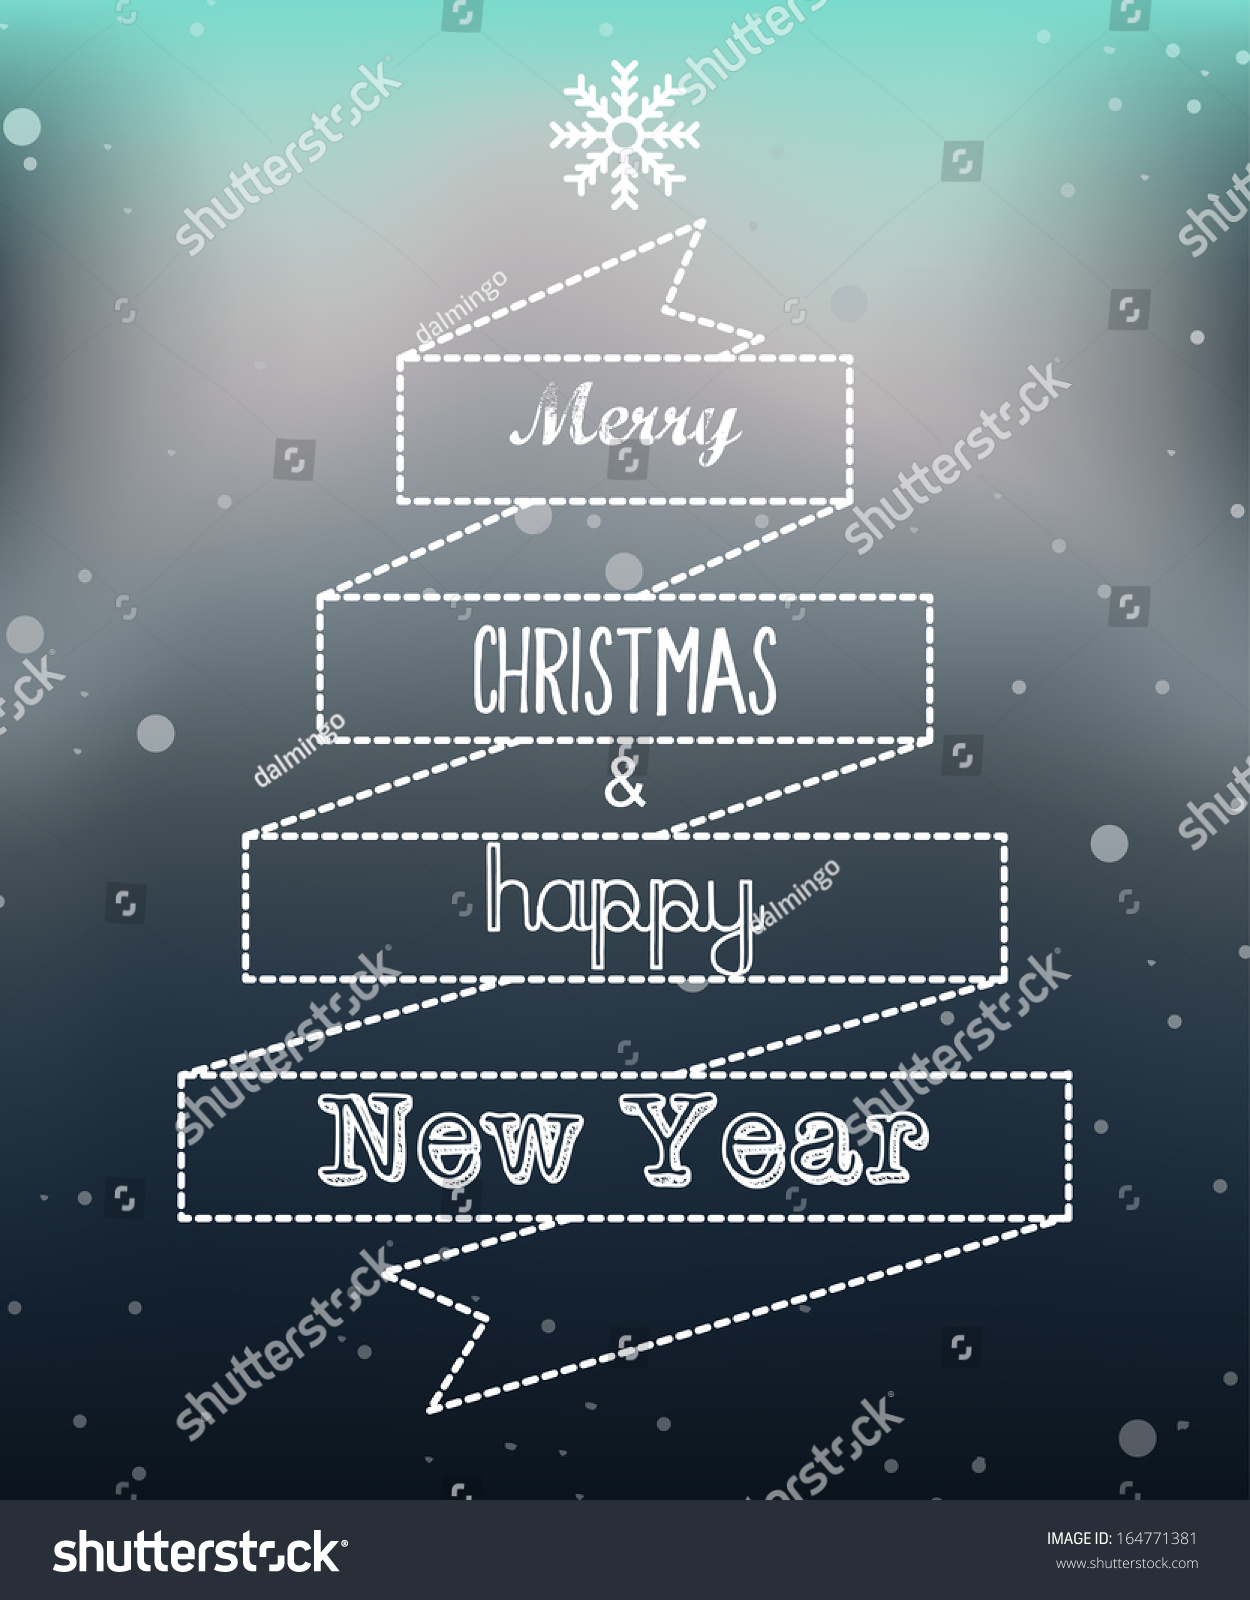 Merry Christmas Happy New Year Greeting Stock Vector Royalty Free